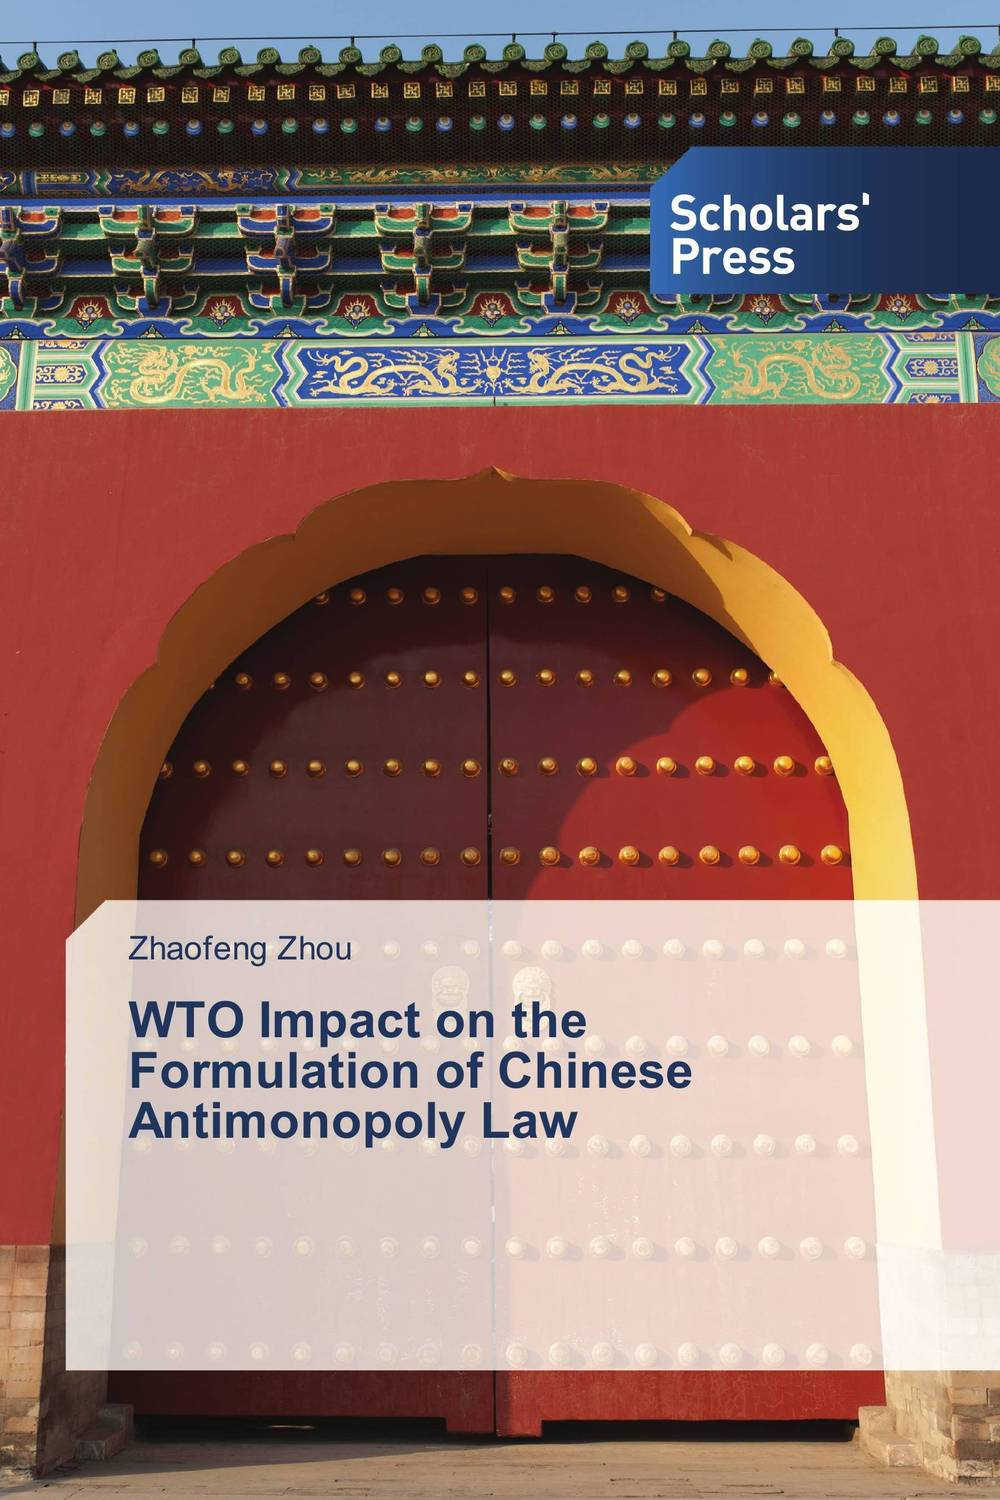 WTO Impact on the Formulation of Chinese Antimonopoly Law evaluation of the impact of a mega sporting event